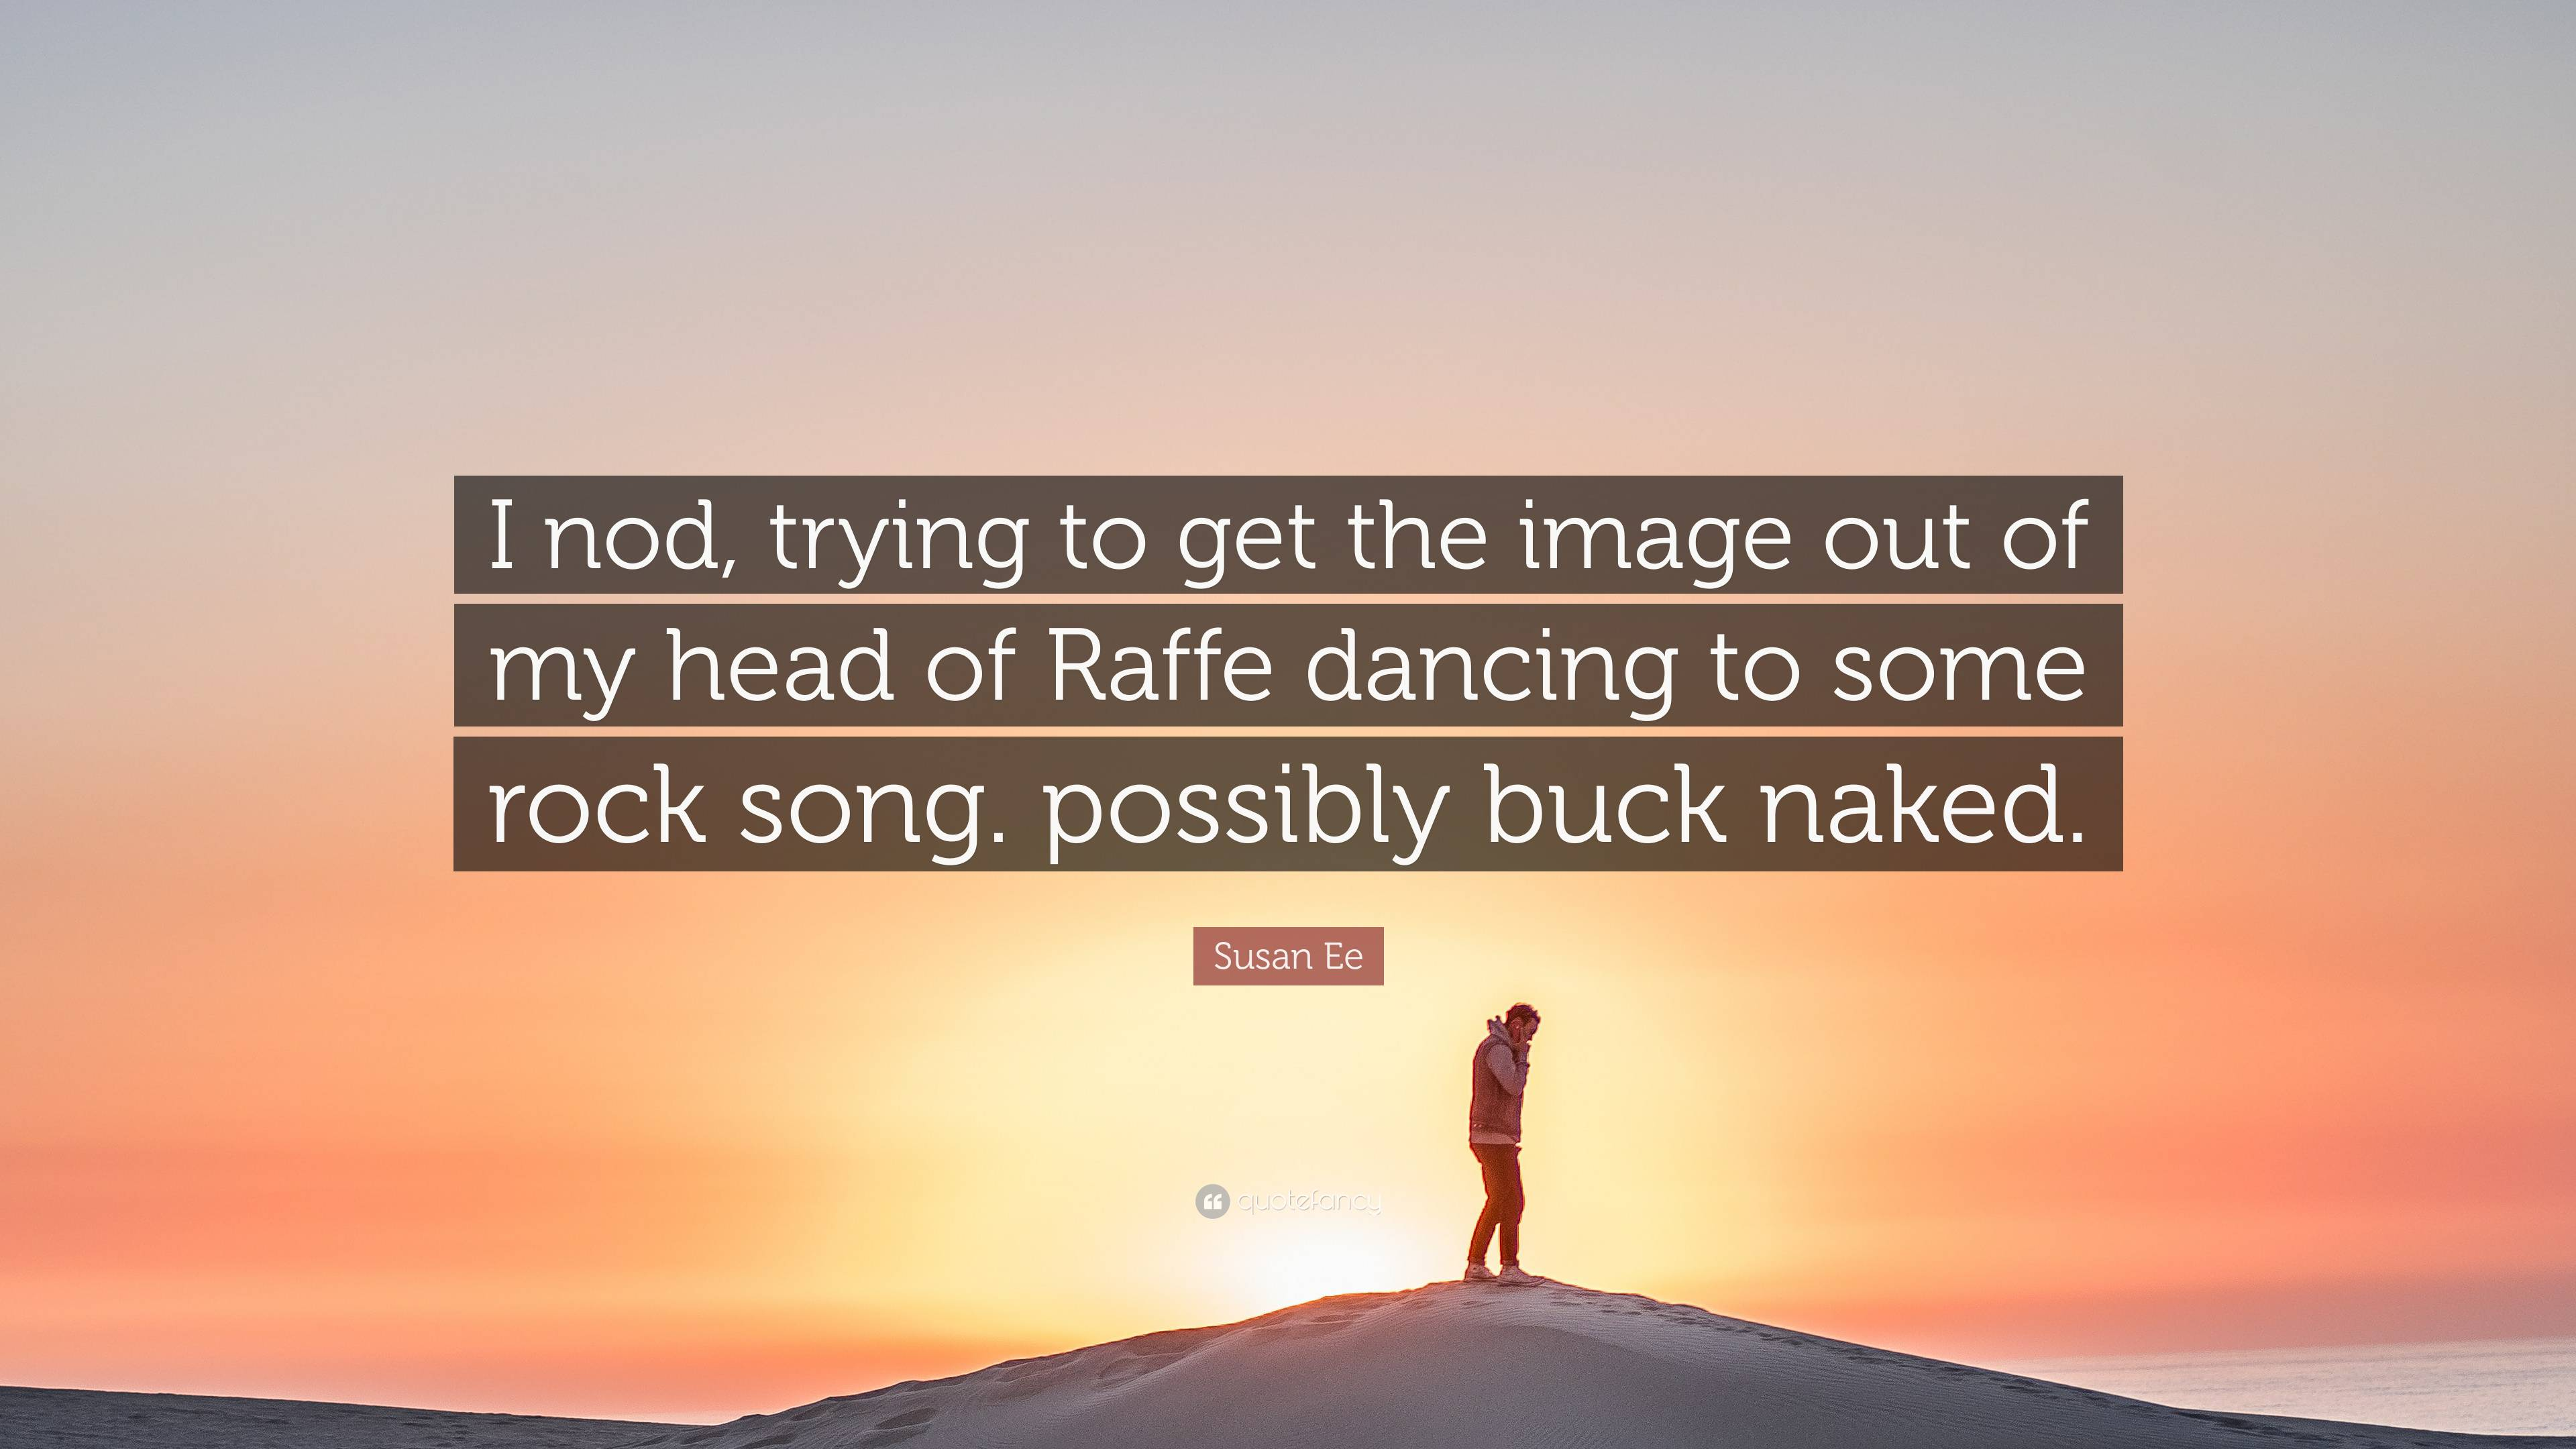 Susan Ee Quote: I nod, trying to get the image out of my